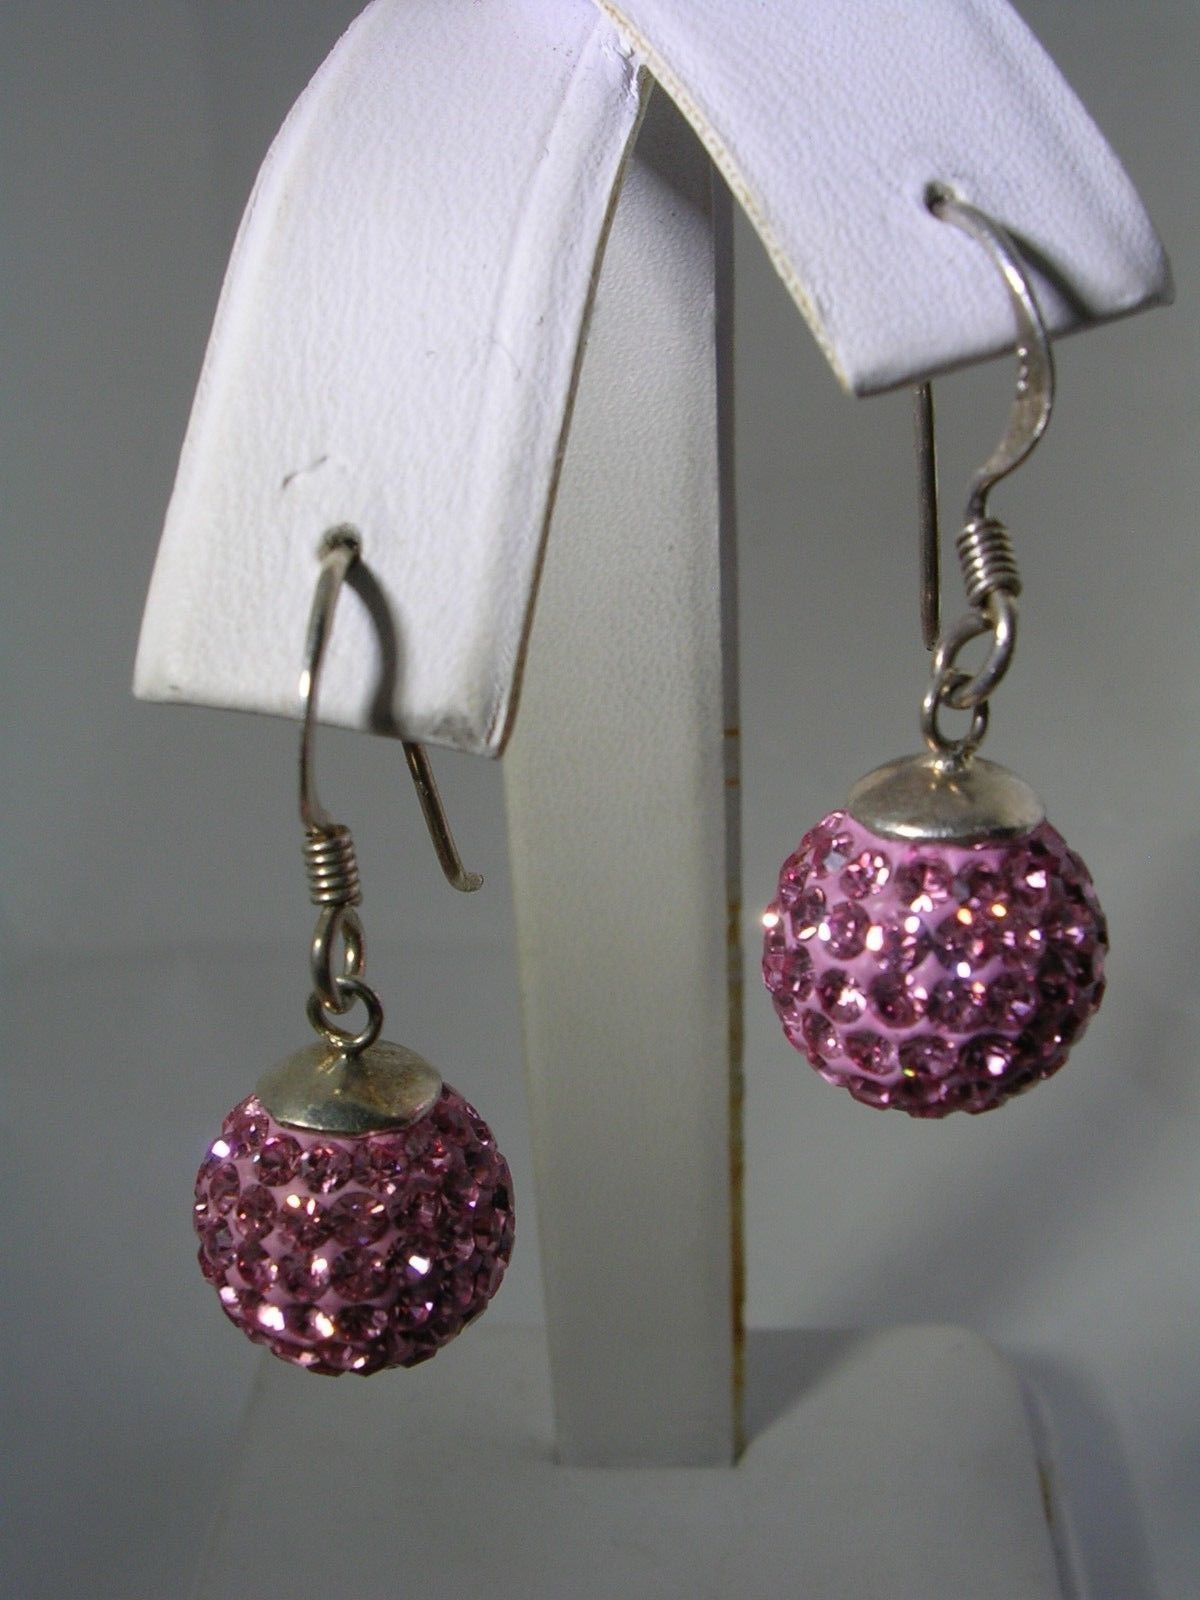 Primary image for PINK CRYSTAL HANGING BALL EARRINGS IN STERLING SILVER